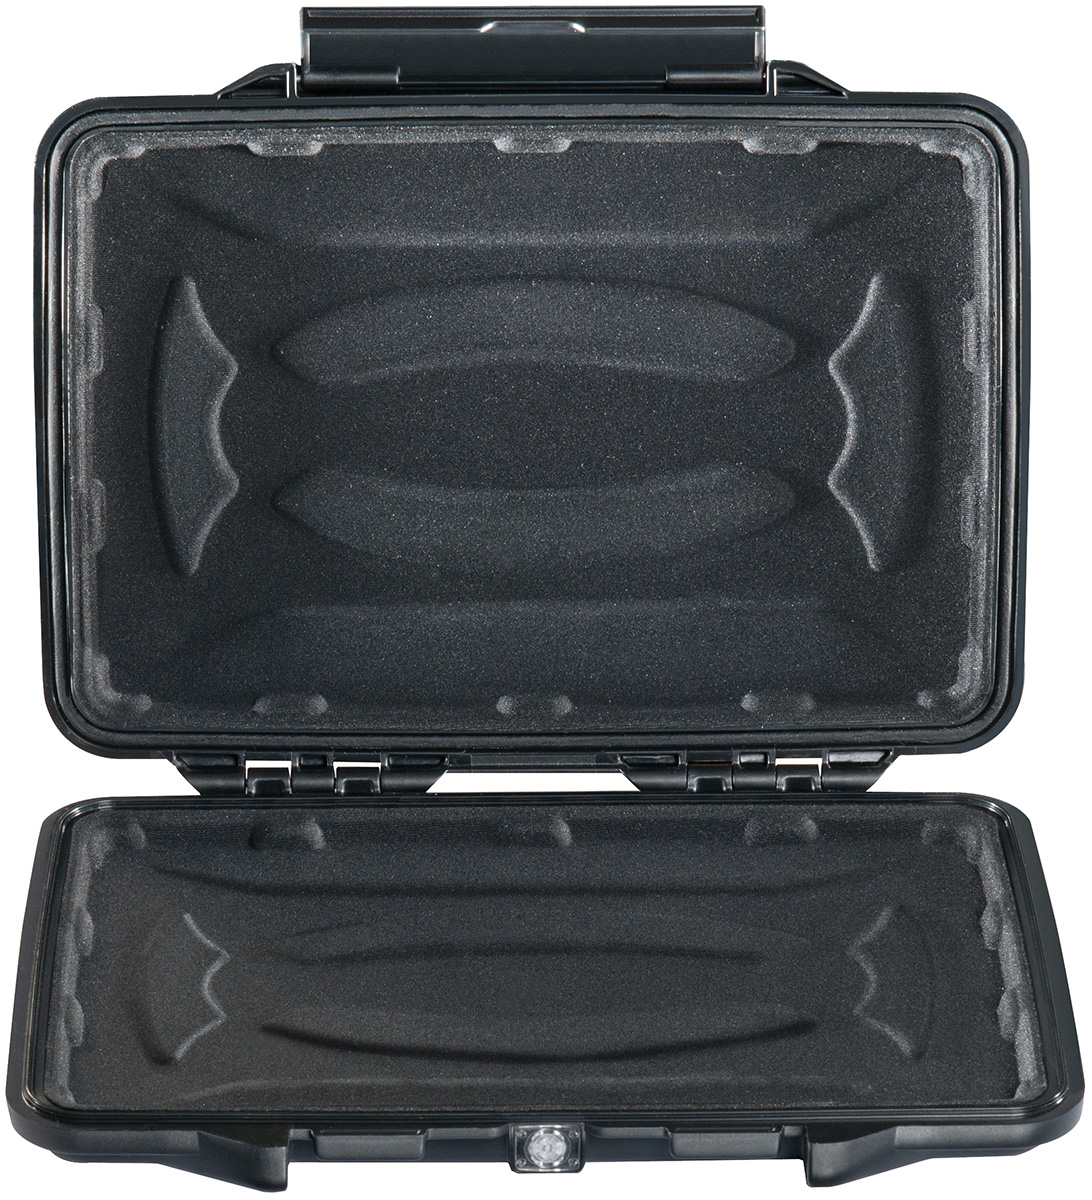 pelican peli products 1055CC hard crushproof tablet protection case